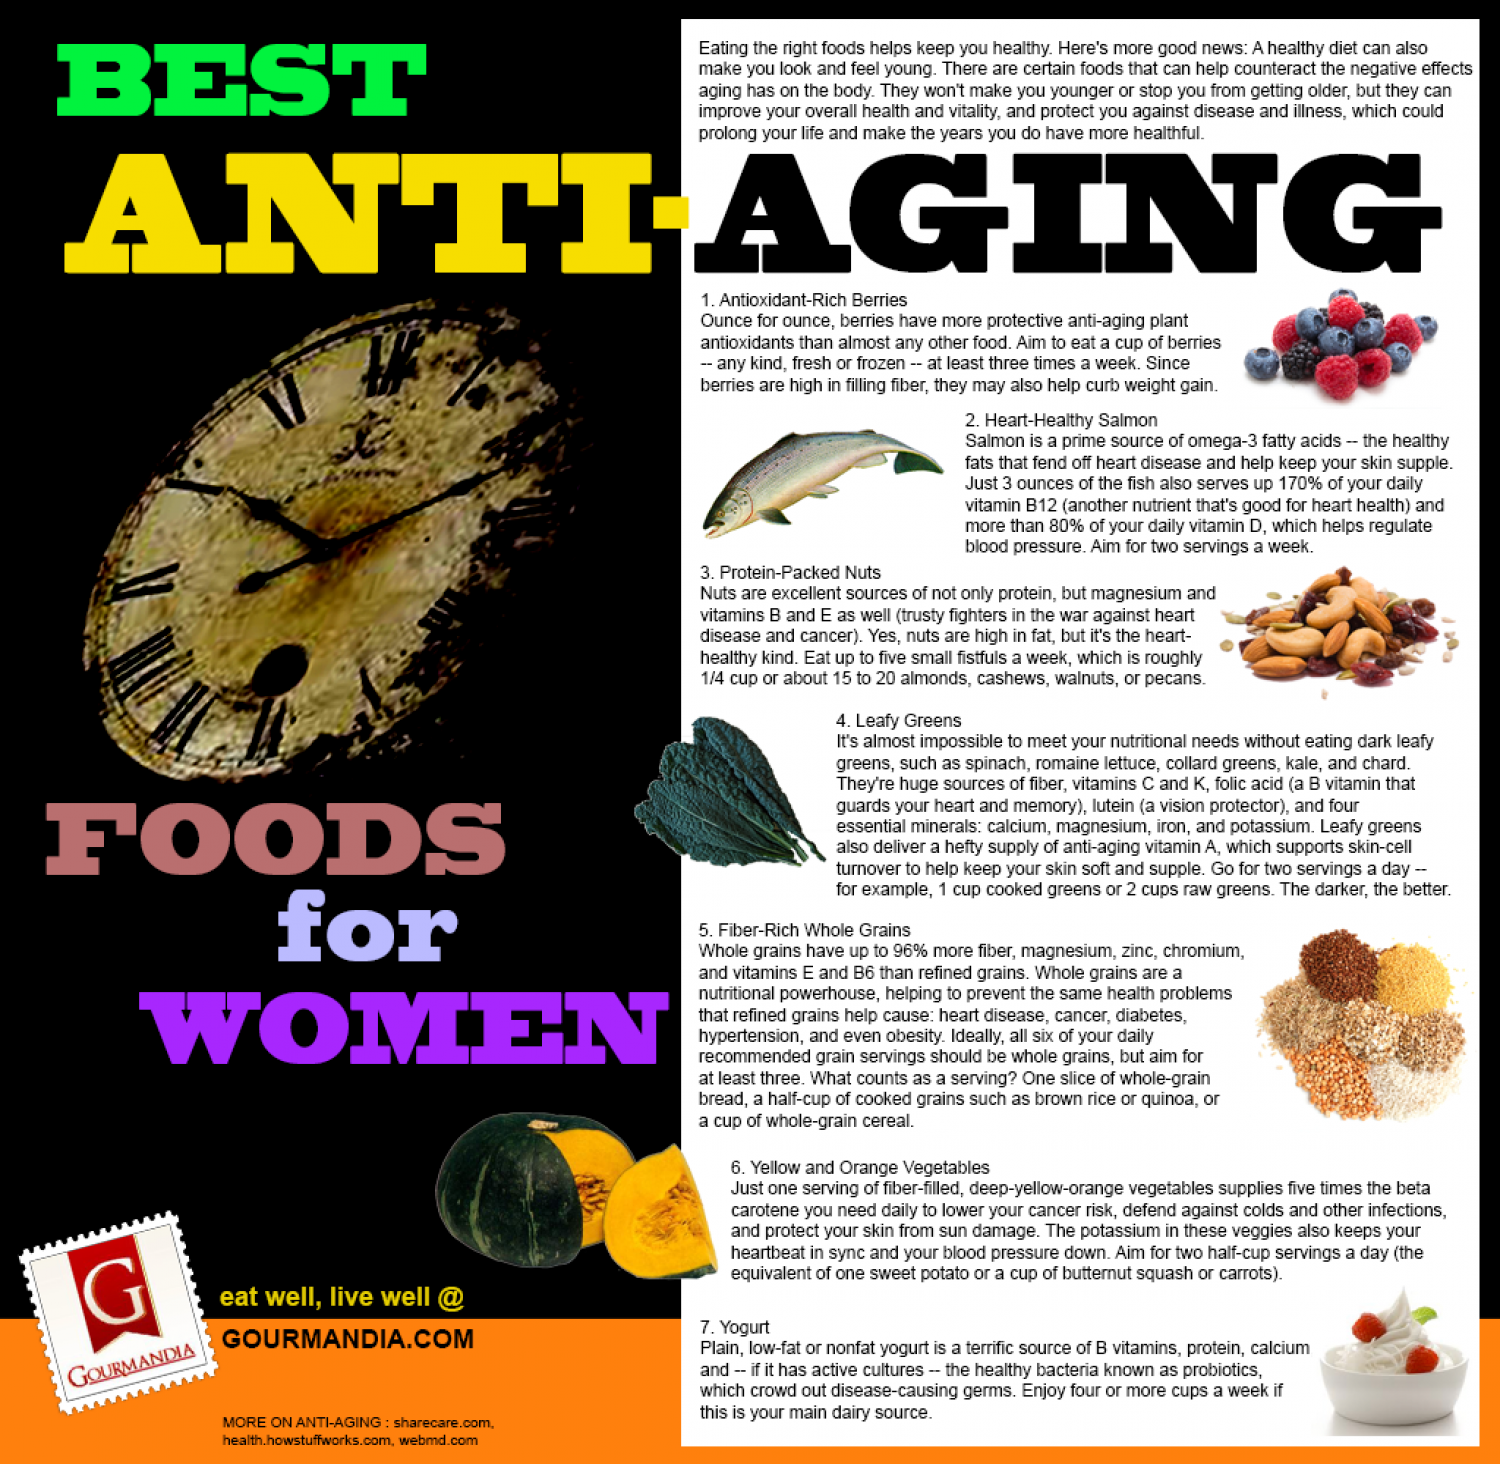 Best Anti-aging Foods for Women Infographic